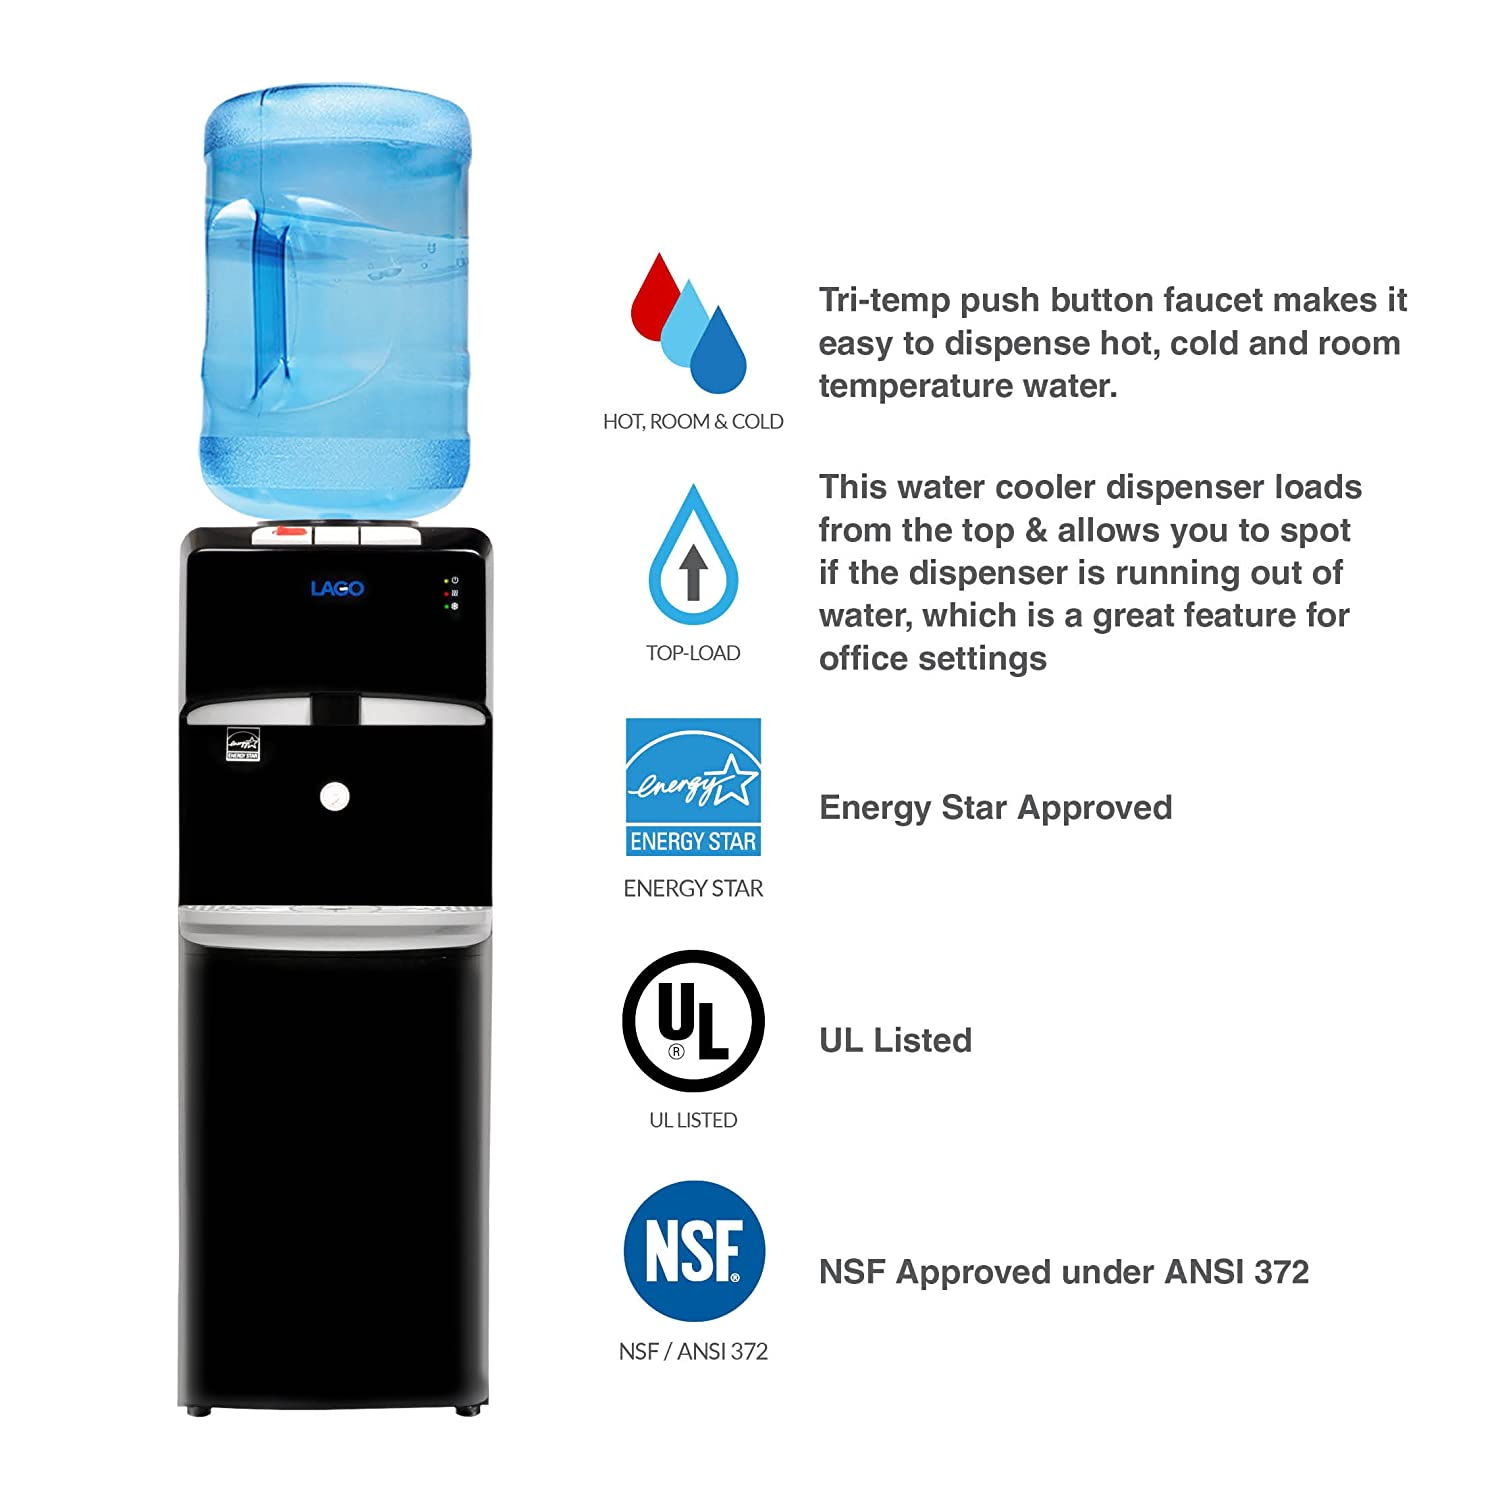 Hot And Cold Water Cooler Dispenser Amazoncom Lago Top Load Hot Cold Room Mini Black Water Cooler